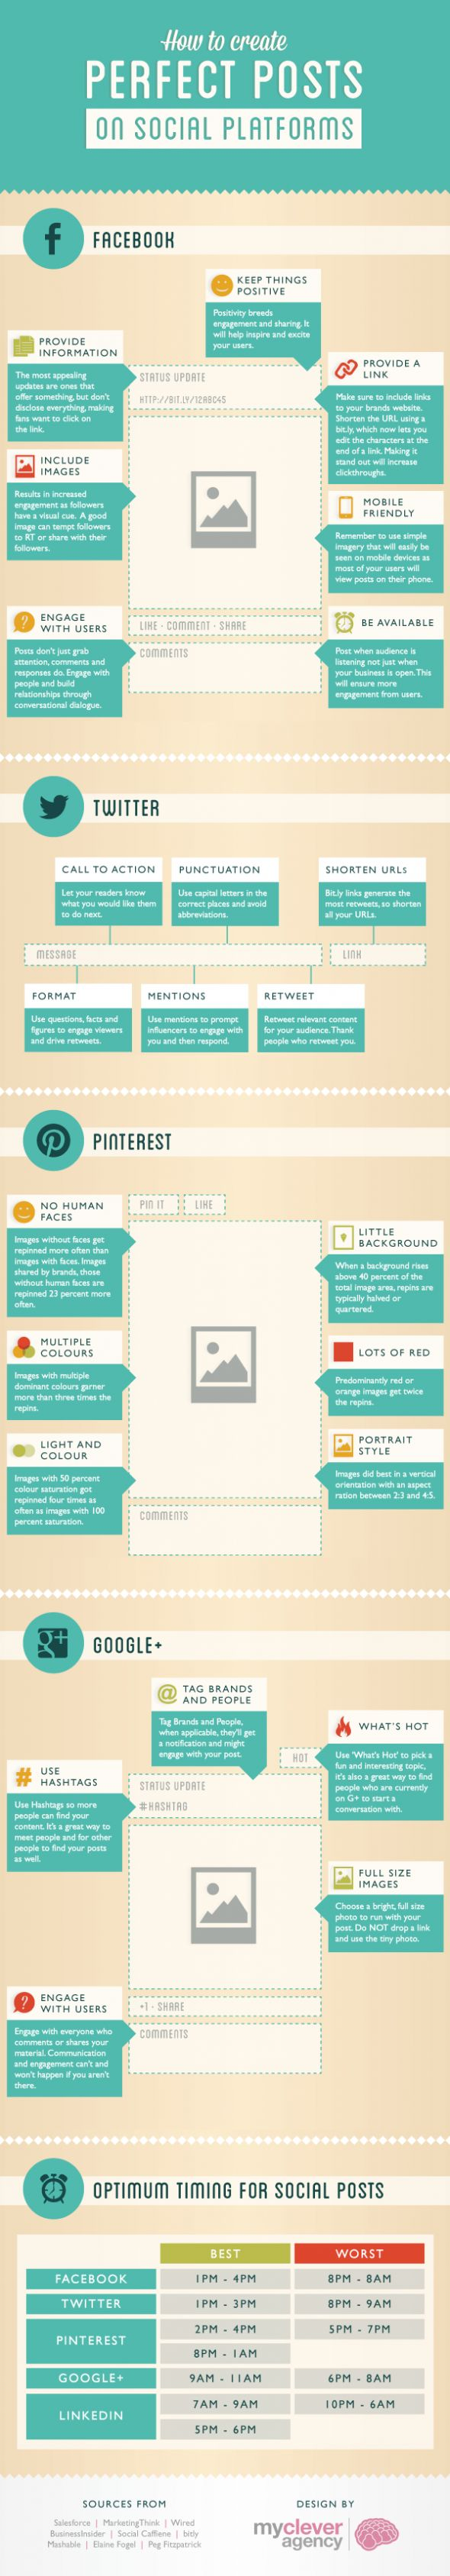 A Brief Guide to Craft Perfect Posts on Different Social Media Networks